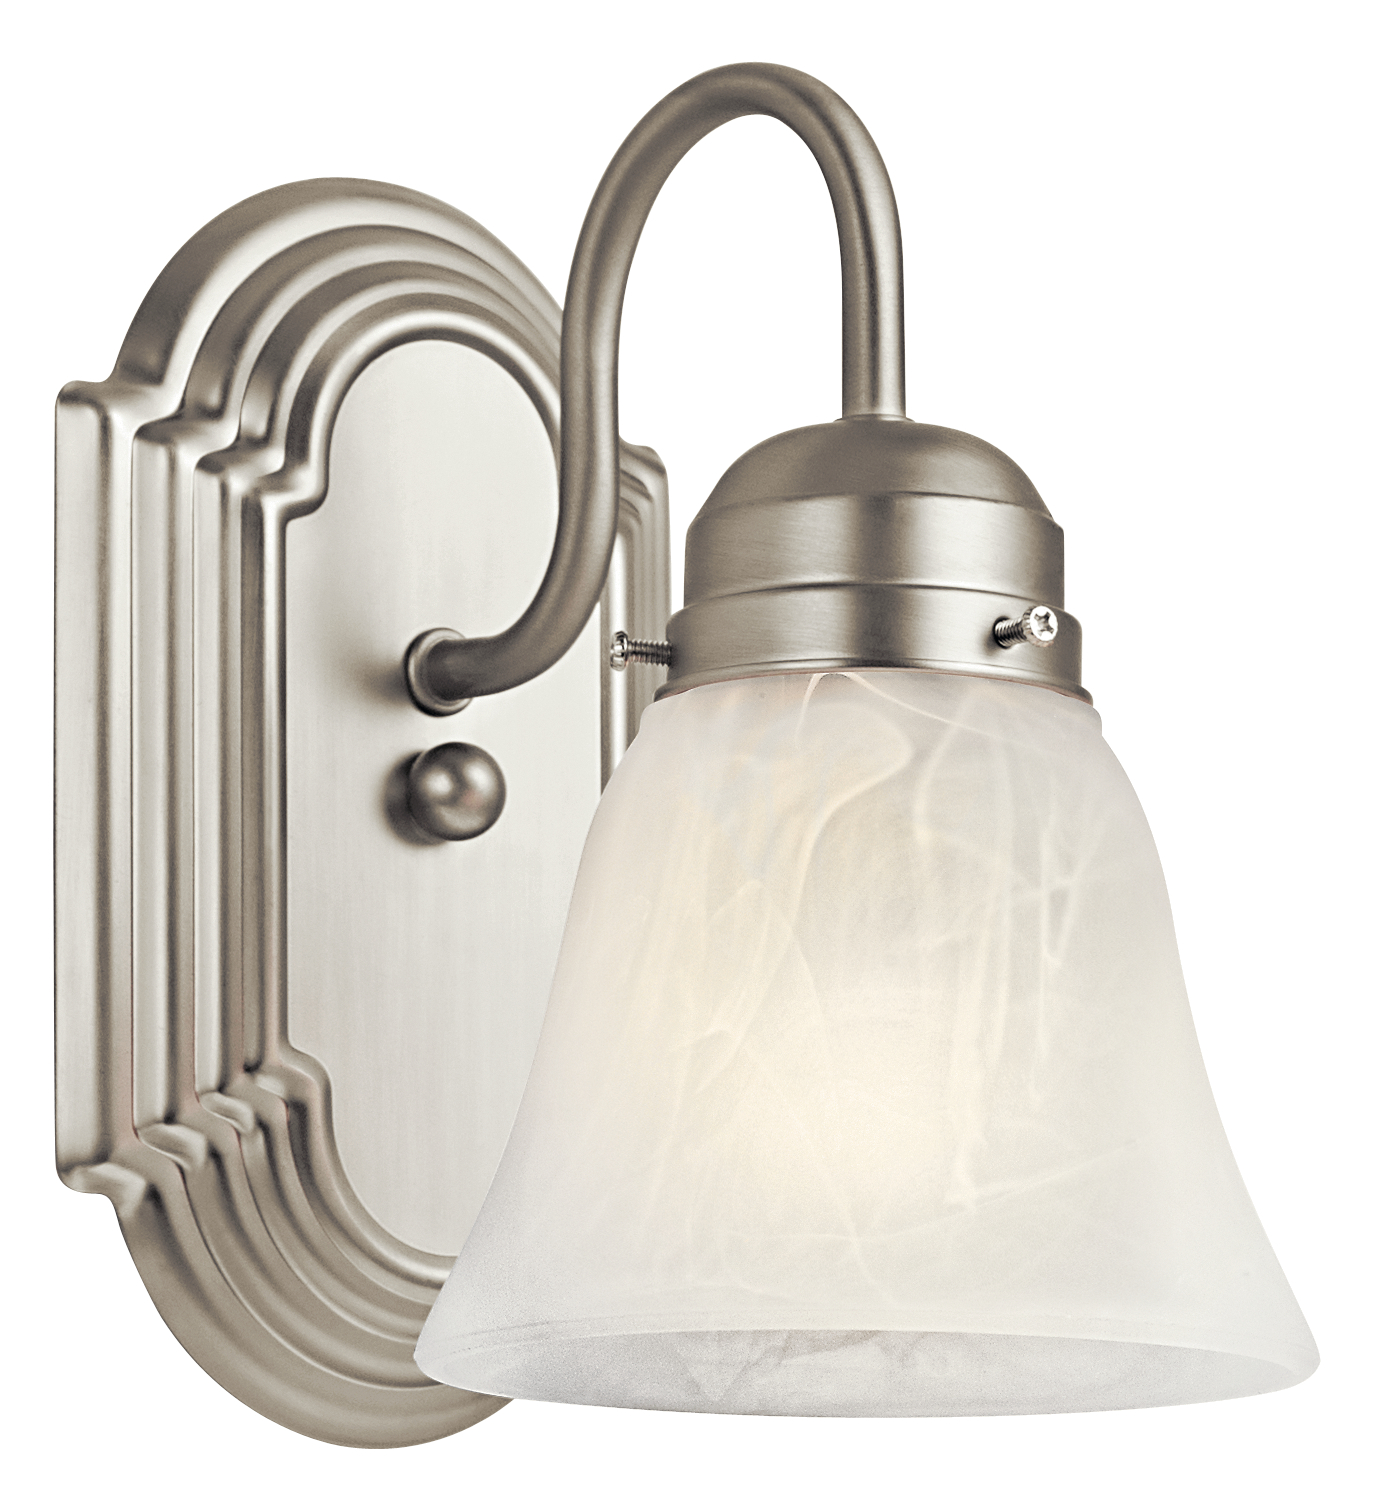 Kichler Outdoor Damp Wall Light with Alabaster Swirl Shade - Brushed Nickel (5334NI)